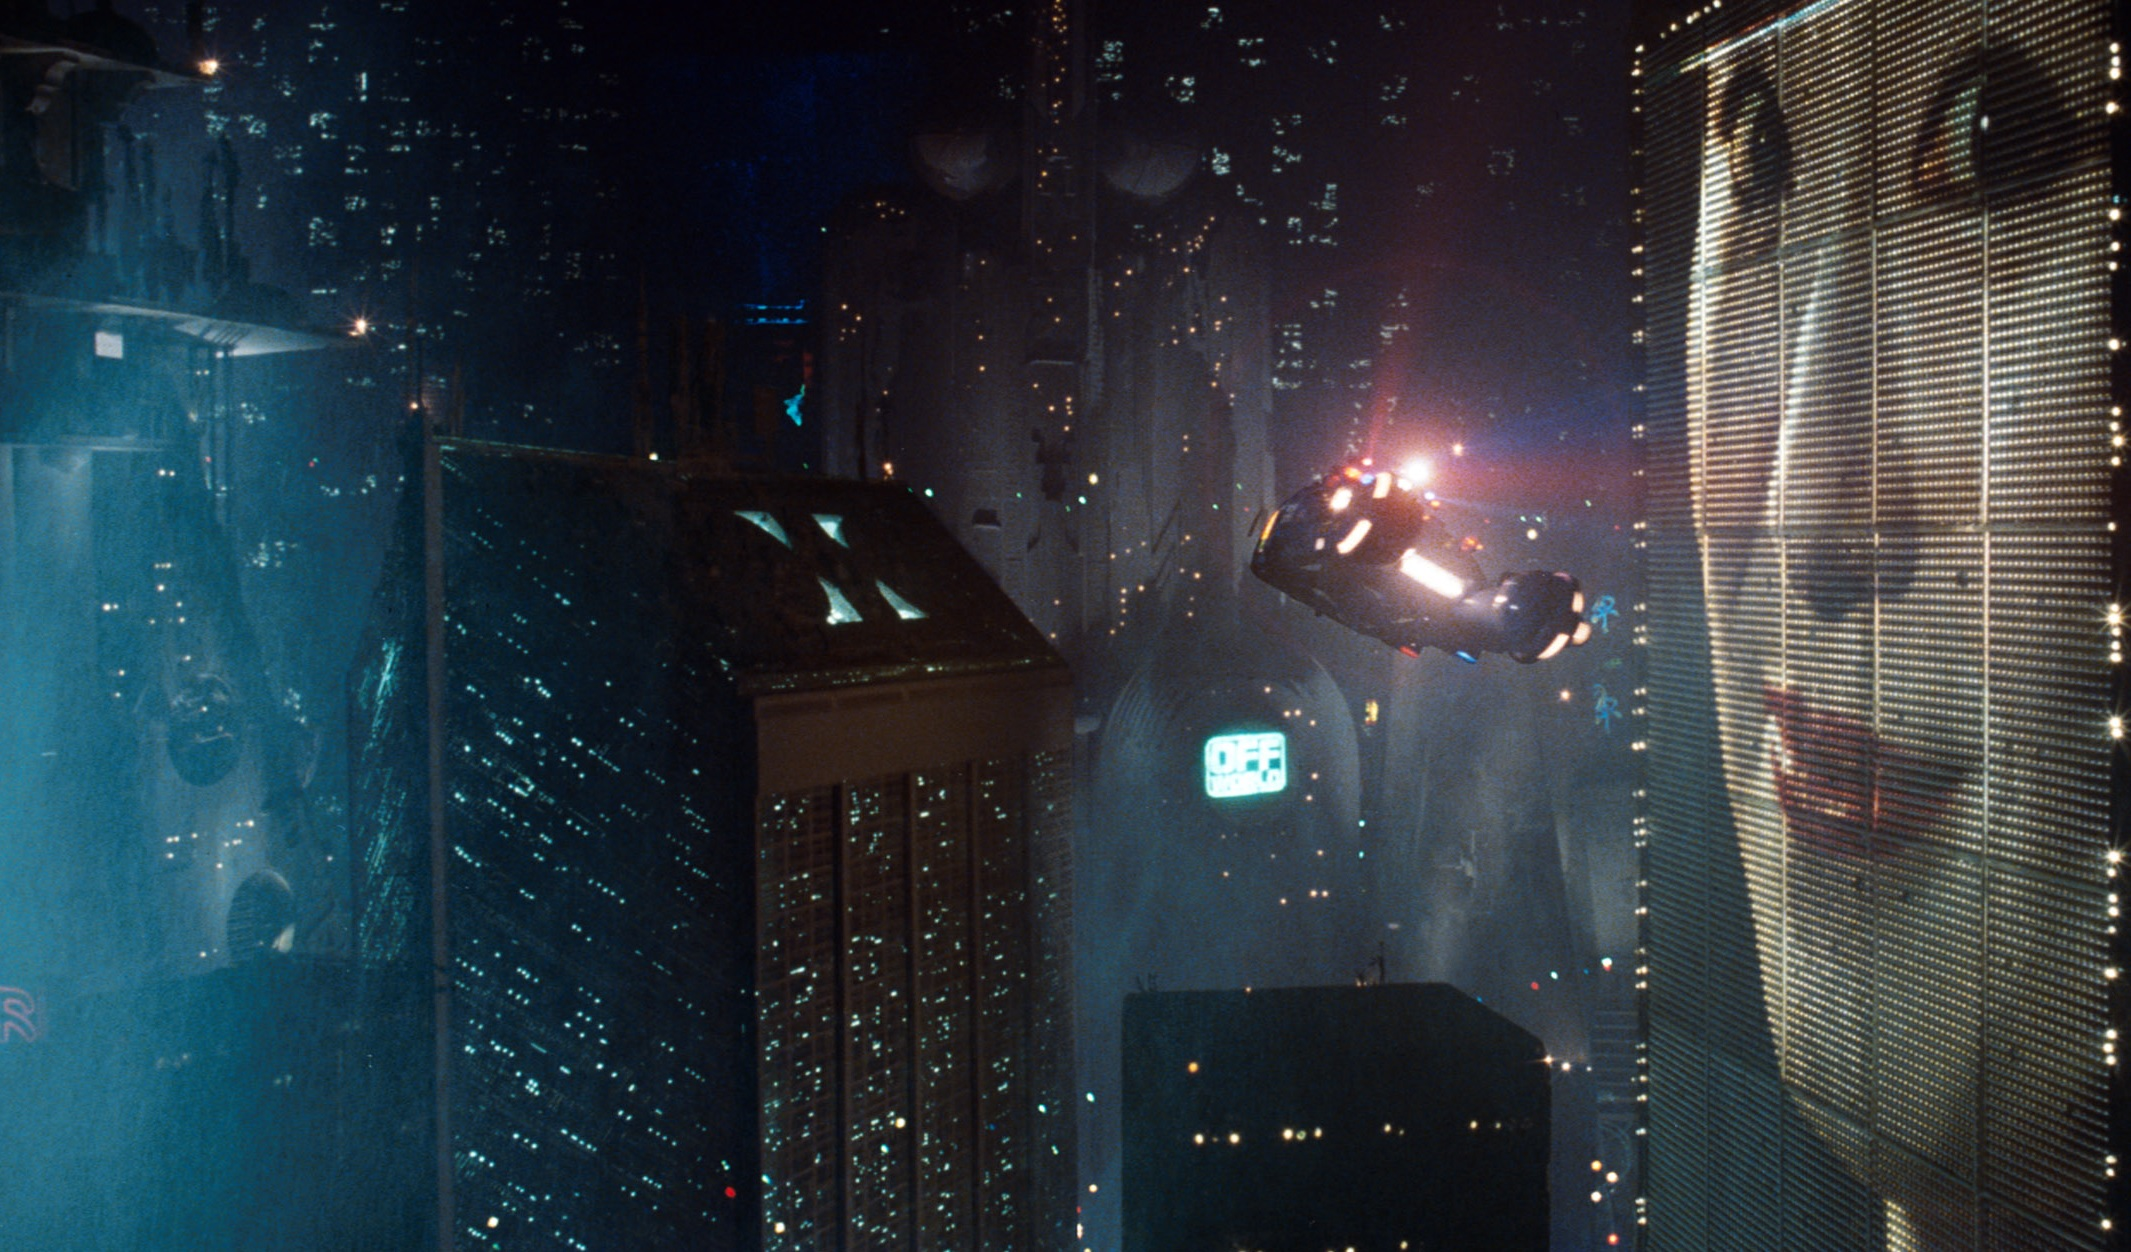 'Blade Runner' Making-Of Documentary on the Tech-noir Classic | IndieWire